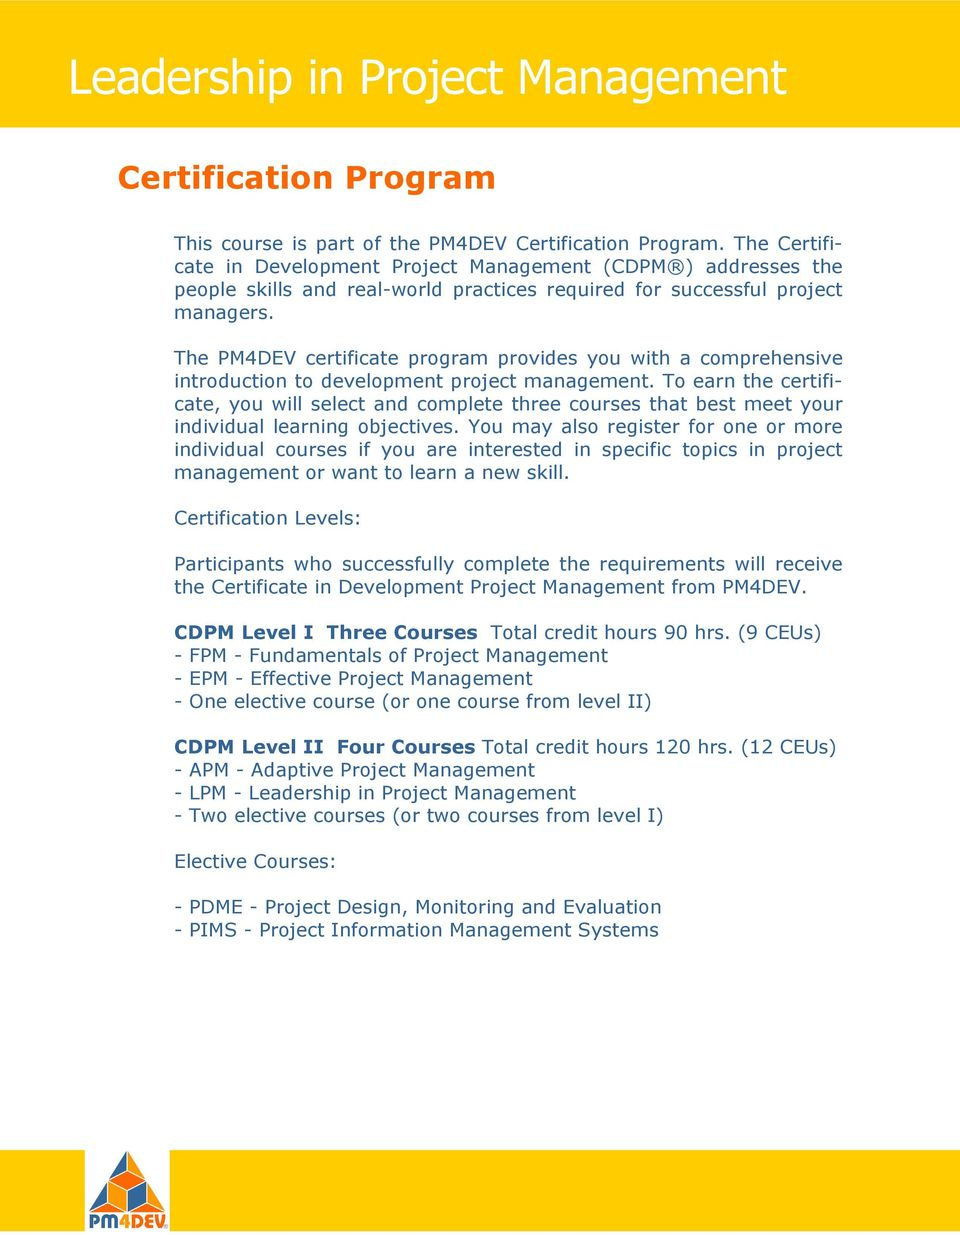 The PM4DEV certificate program provides you with a comprehensive introduction to development project management.